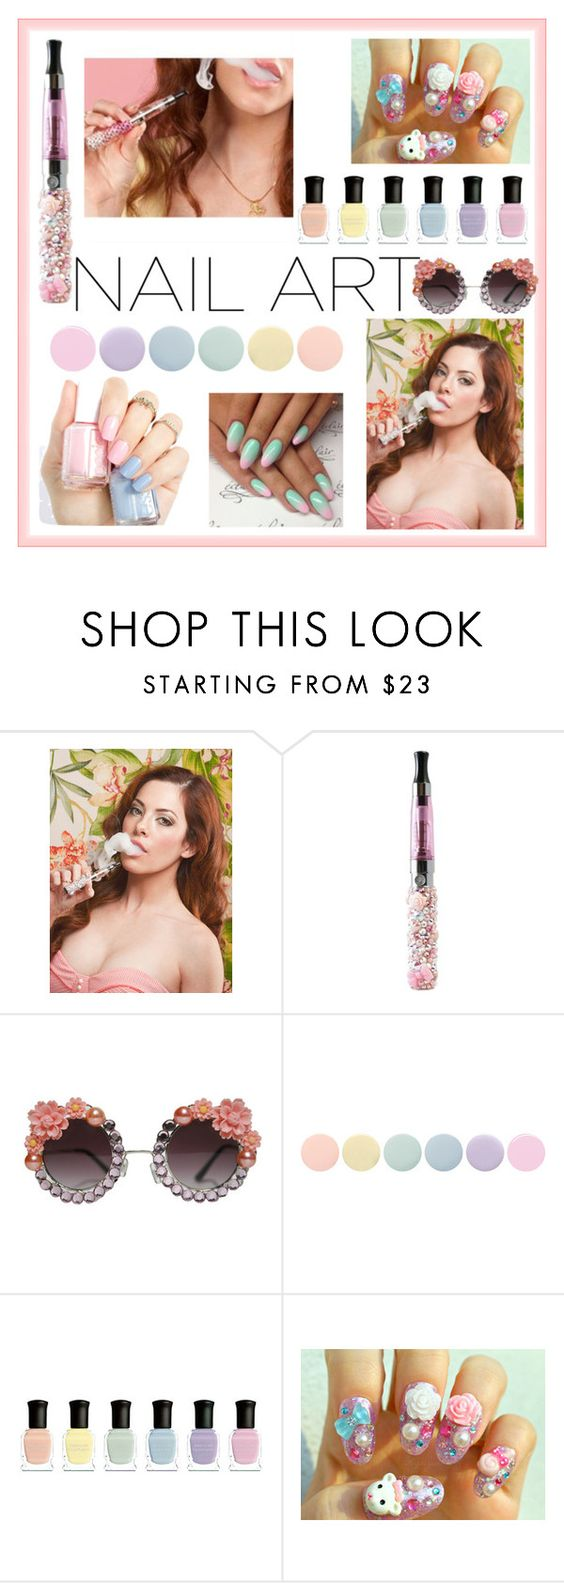 """Pastel Nails"" by crystalcult on Polyvore featuring beauty, Shibuya, Deborah Lippmann, pastelnails and thecrystalcult"